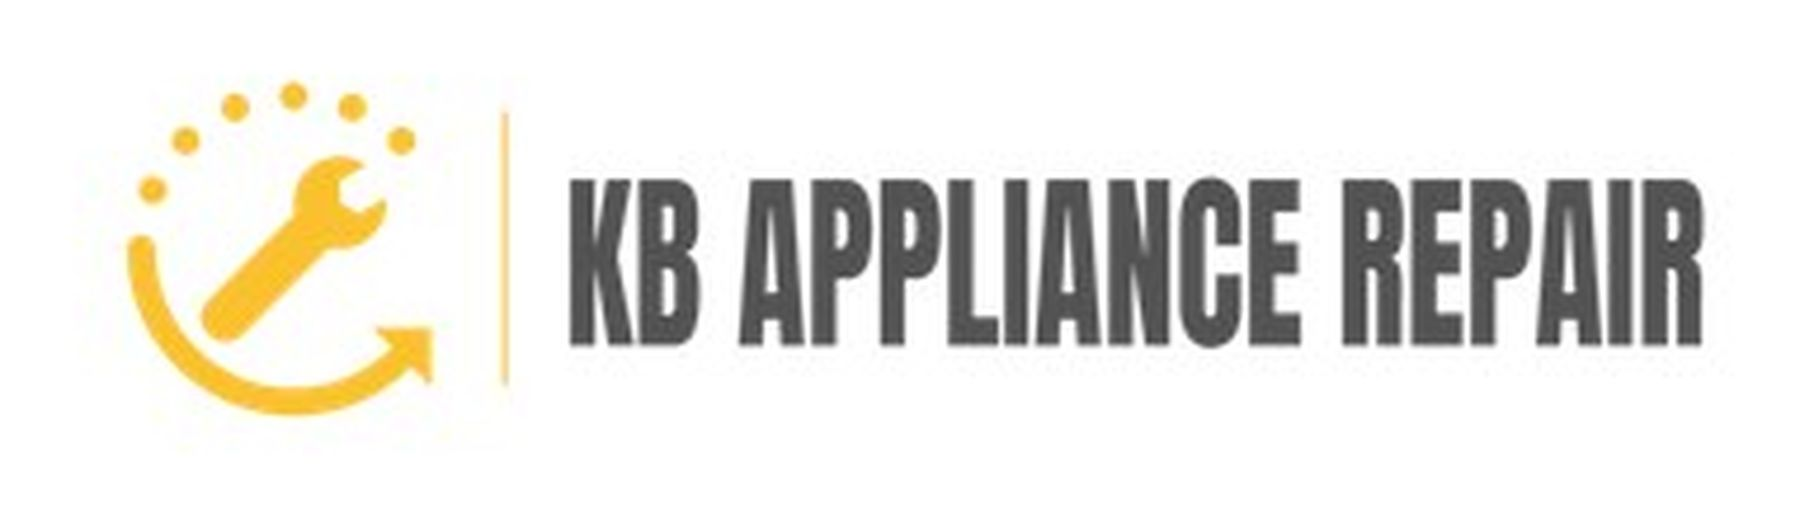 KB Appliance Repair Woodbridge 4700 Hwy 7 Unit 713 Woodbridge, ON L4L 0B4 (289) 236-0026 https://appliancerepairwoodbridge.ca/ Woodbridge ON Appliance Repair Appliance Repair IN Woodbridge Appliance Repair Woodbridge Appliance Repair Woodbridge ON Woodbridge Appliance Repair First Eyeem Photo